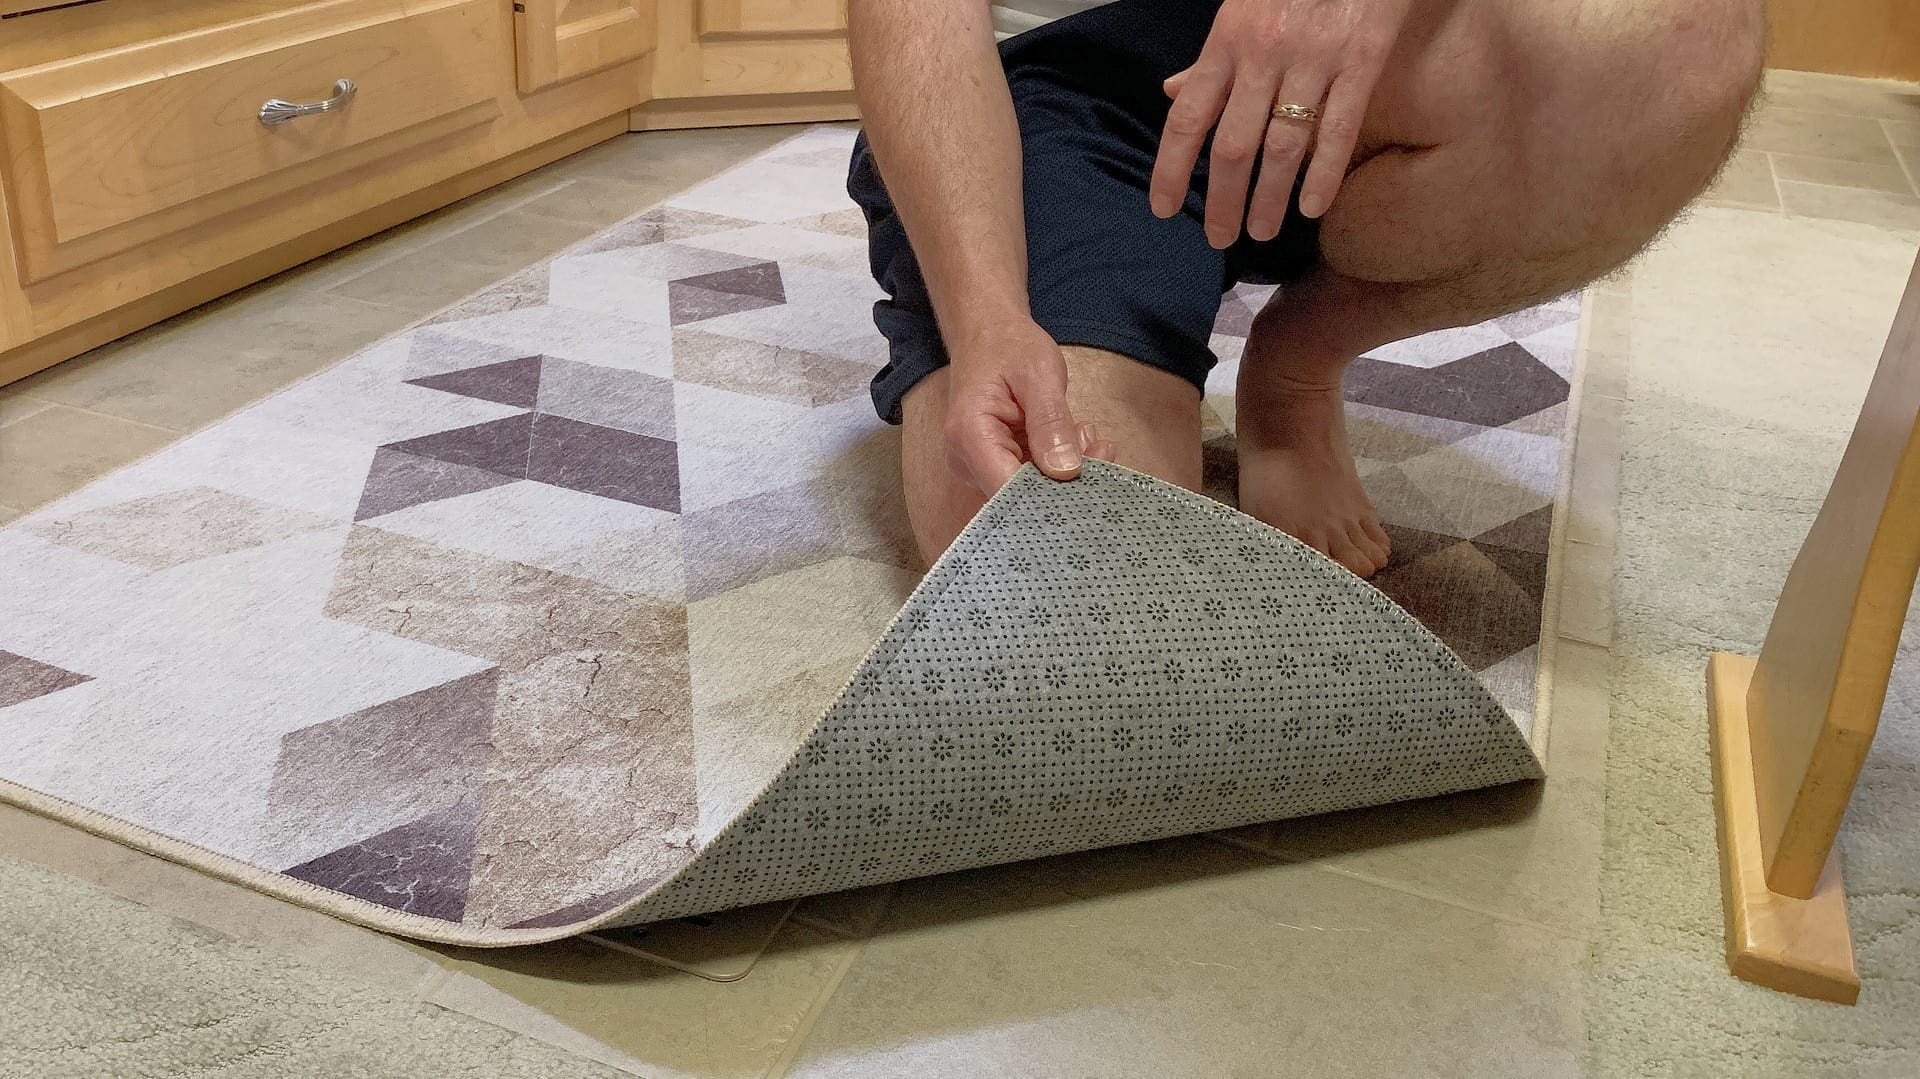 The non-slip backing on our My Magic Carpet washable rugs